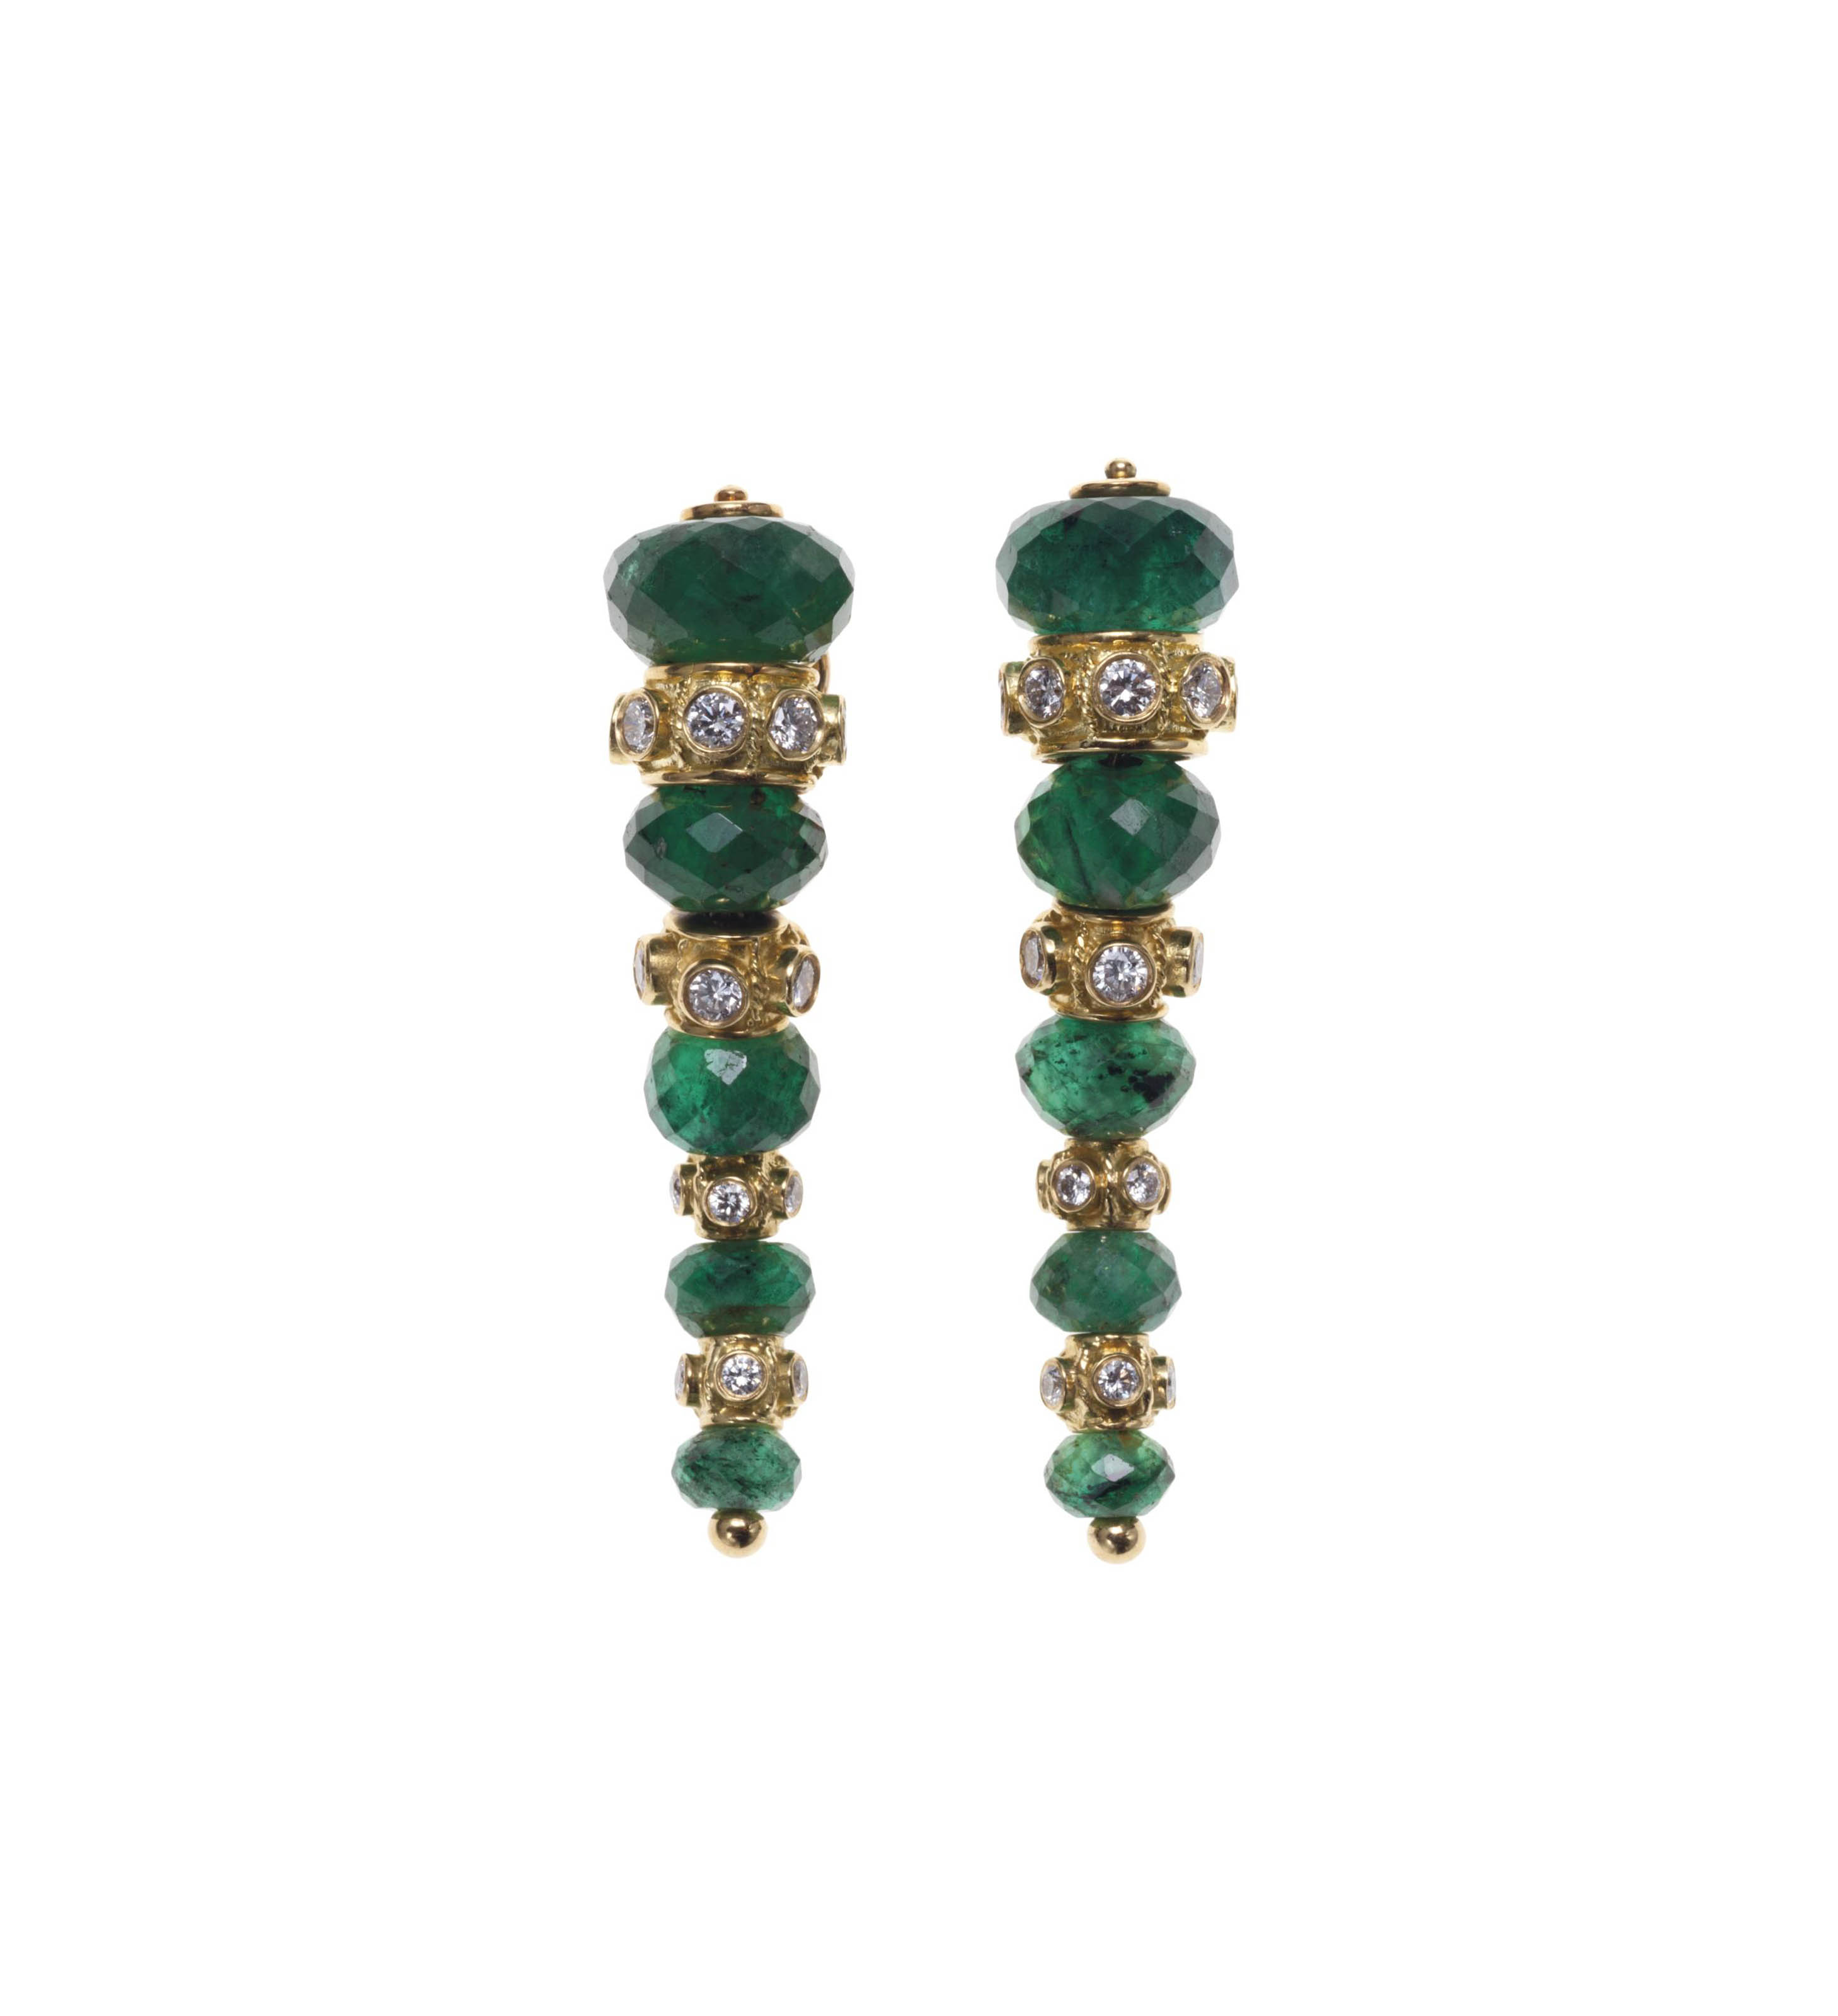 A PAIR OF EMERALD AND DIAMOND EAR PENDANTS, BY JULIUS COHEN